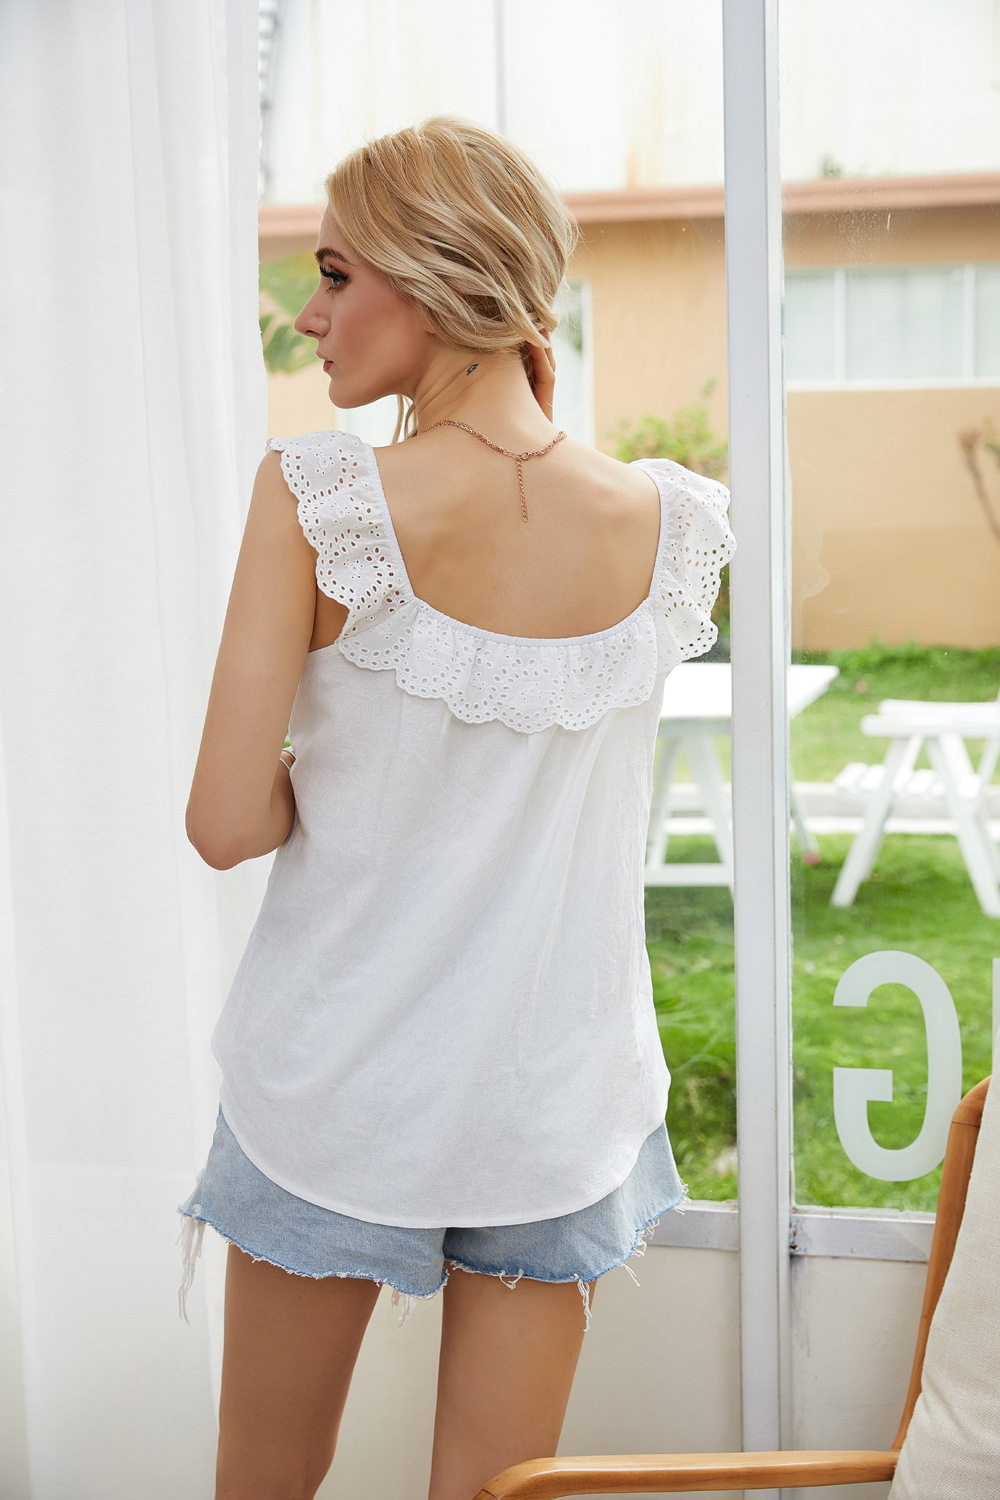 white vest sling lotus leaf lace shirt inside and outside wear home casual top NSDF1537